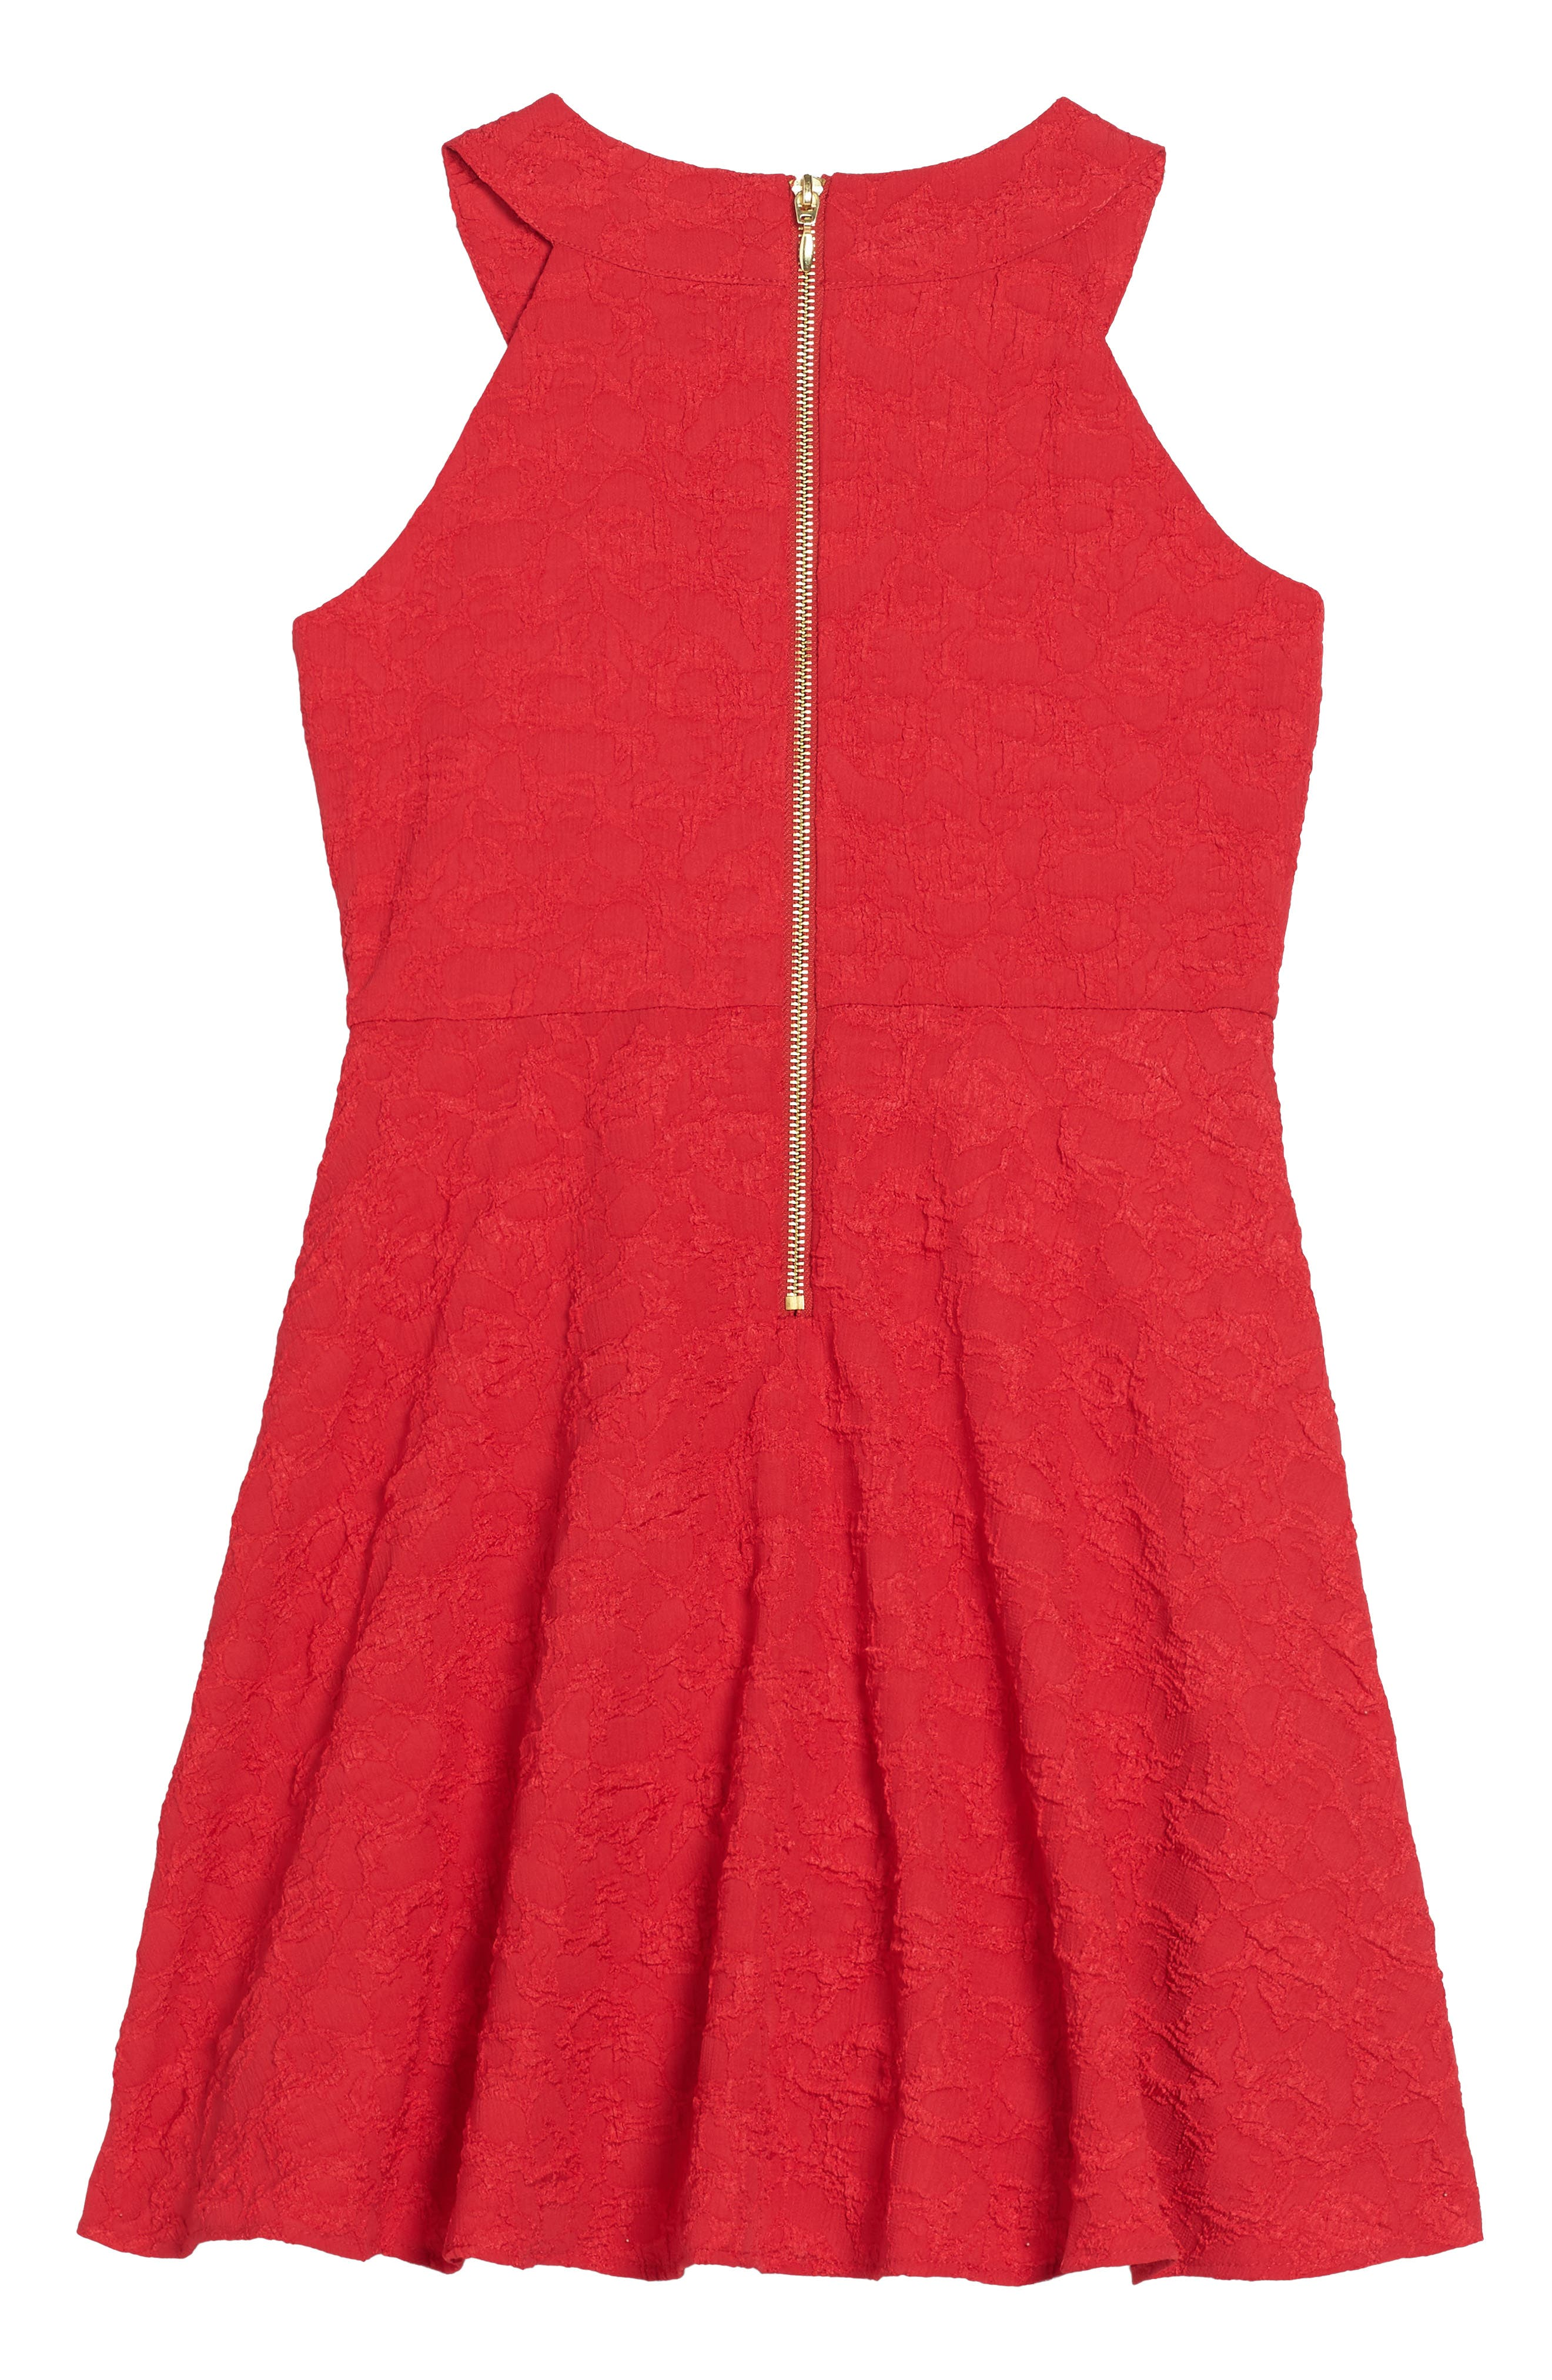 Jewel Neck Fit & Flare Dress,                             Alternate thumbnail 2, color,                             Ruby